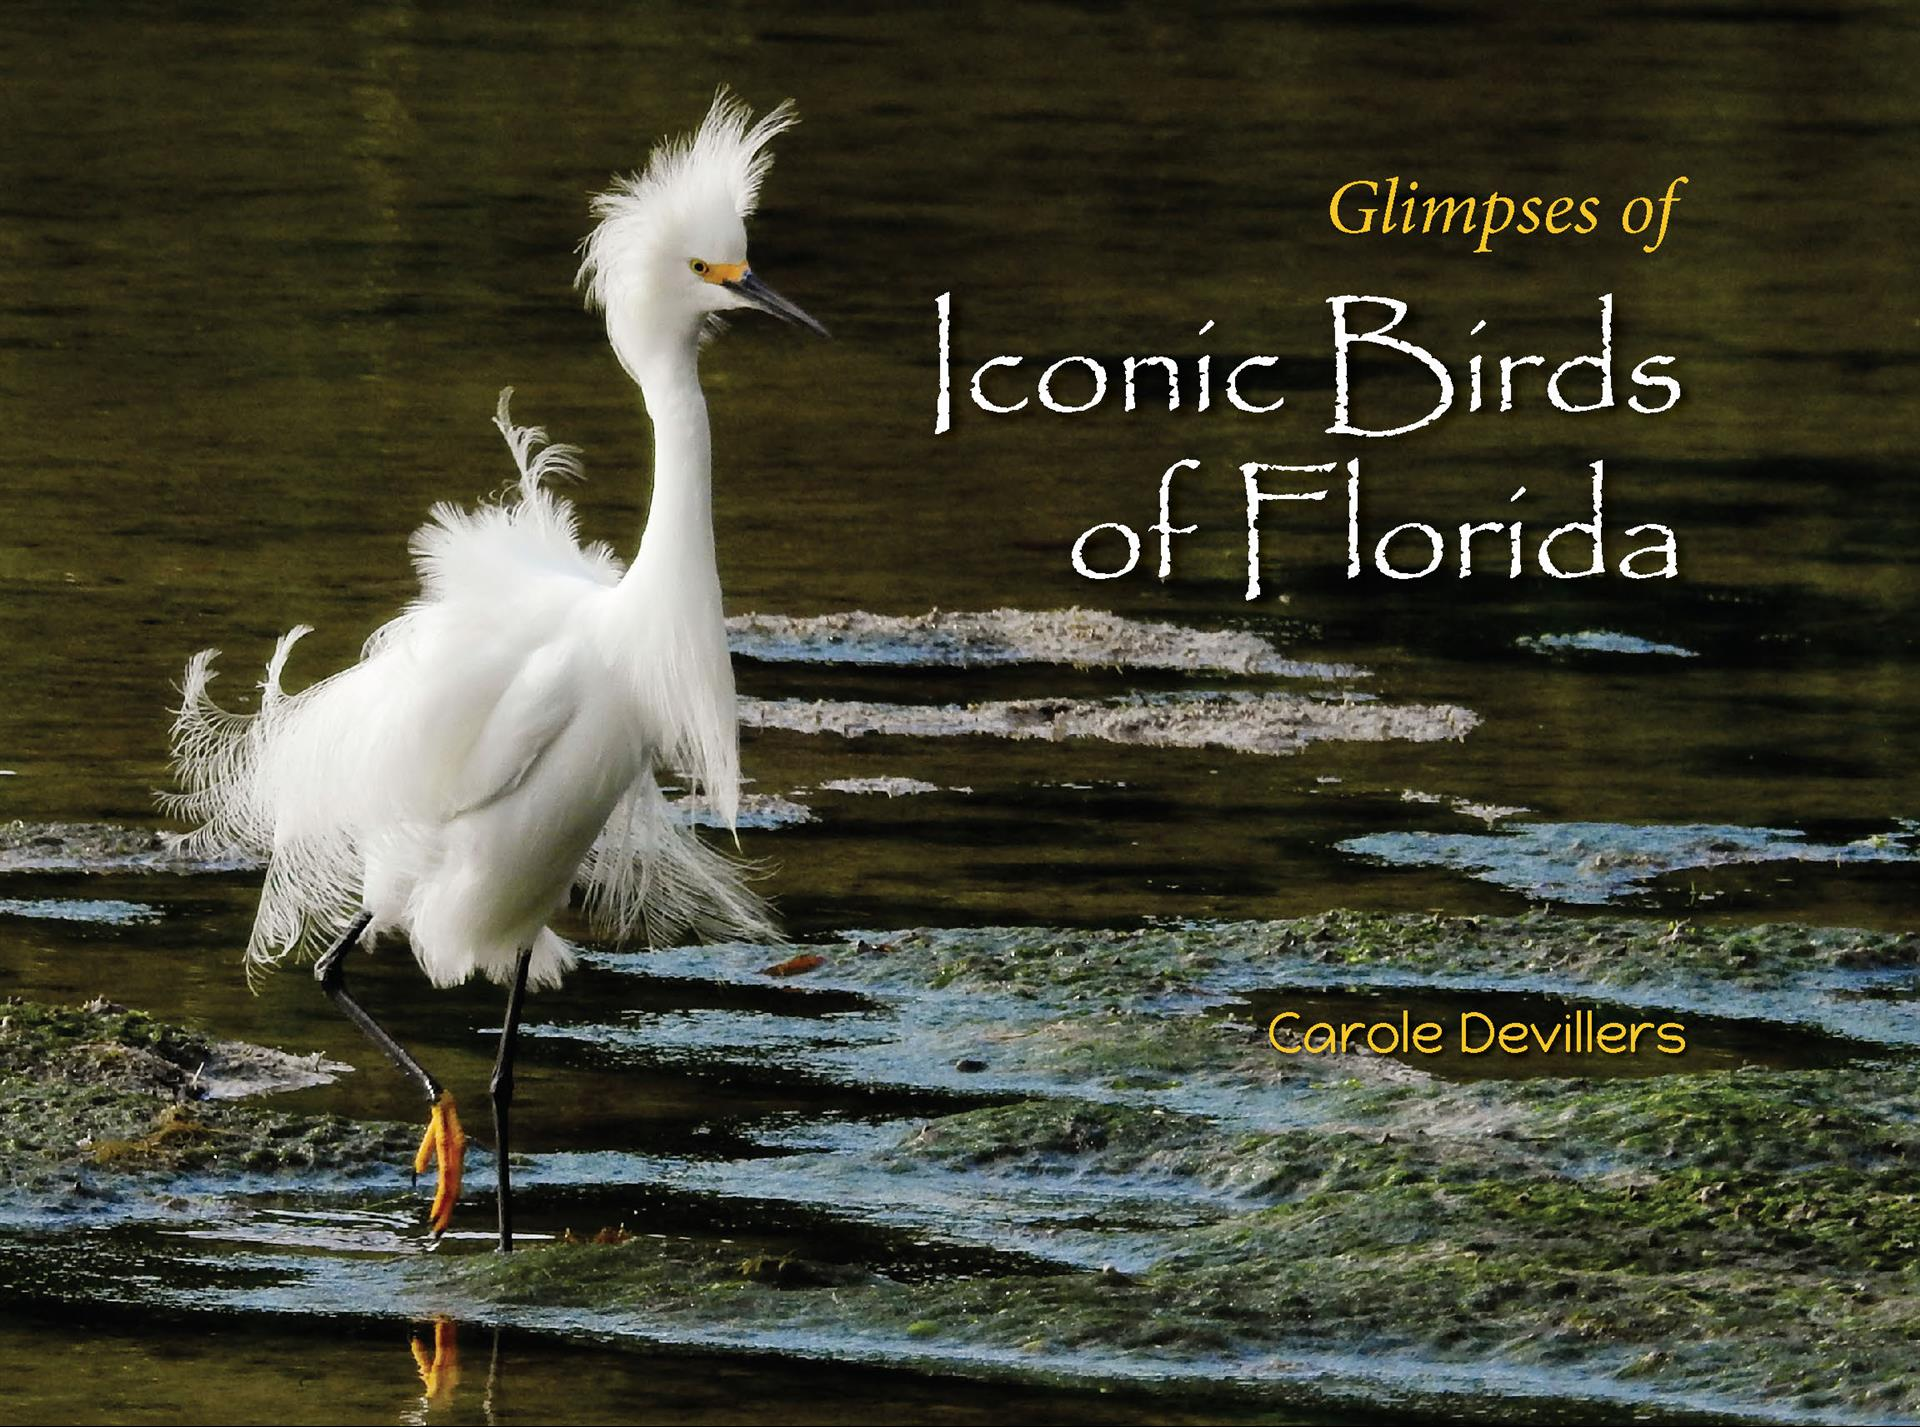 Glimpses of Iconic Birds of Florida